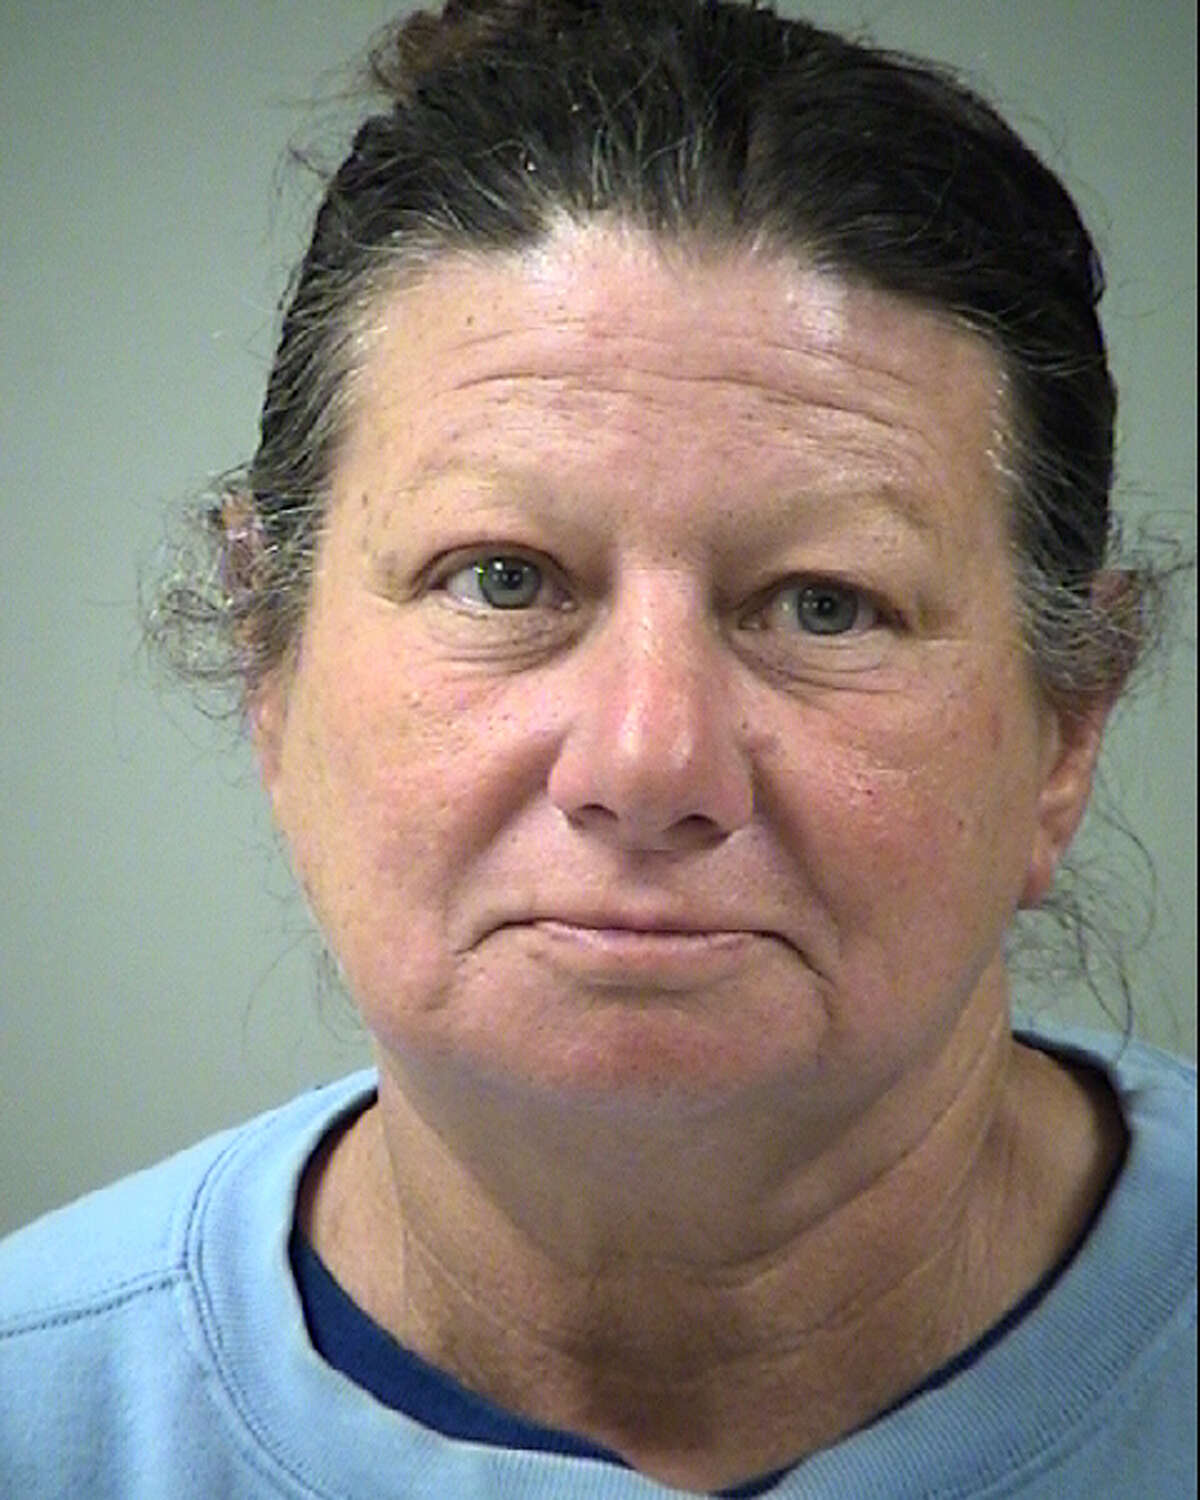 Victoria Jamvold, 59, faces a Class A misdemeanor charge of cruelty to a non-livestock animal, according to court documents.